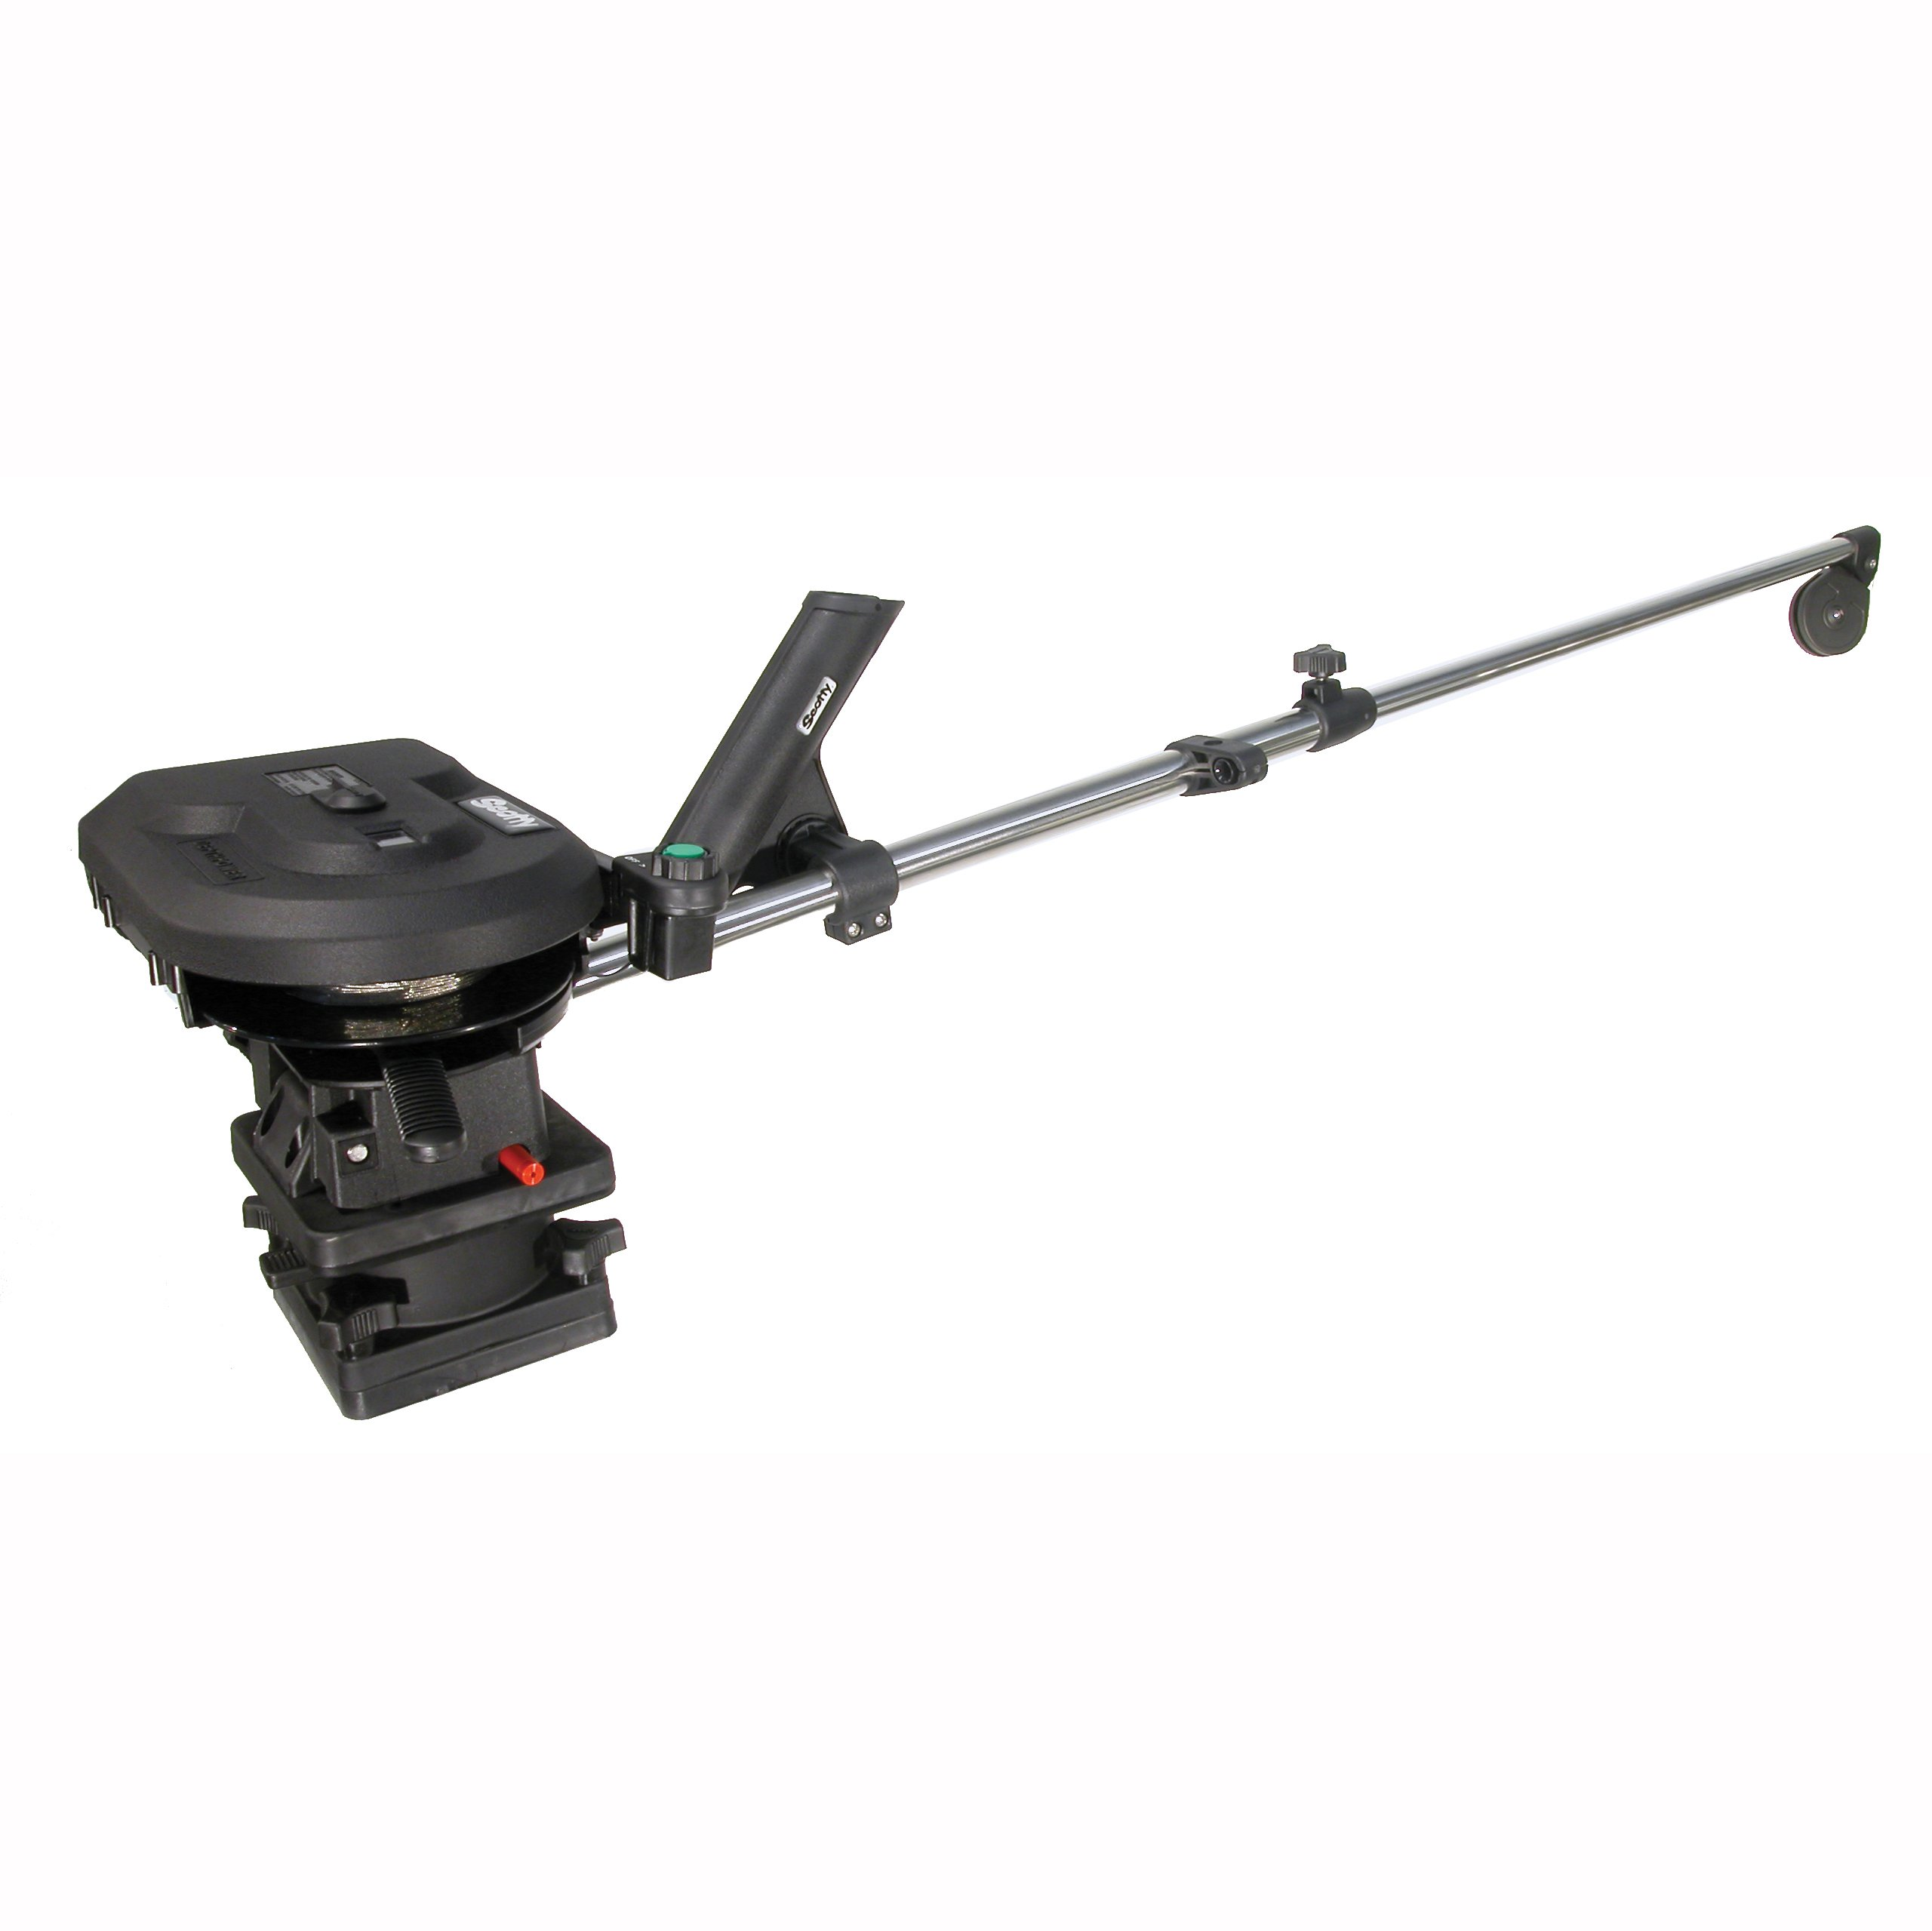 Scotty #1106 Depthpower Electric Downrigger w/ 60-Inch Telescopic Boom & Swivel Base, Rod Holder by Scotty